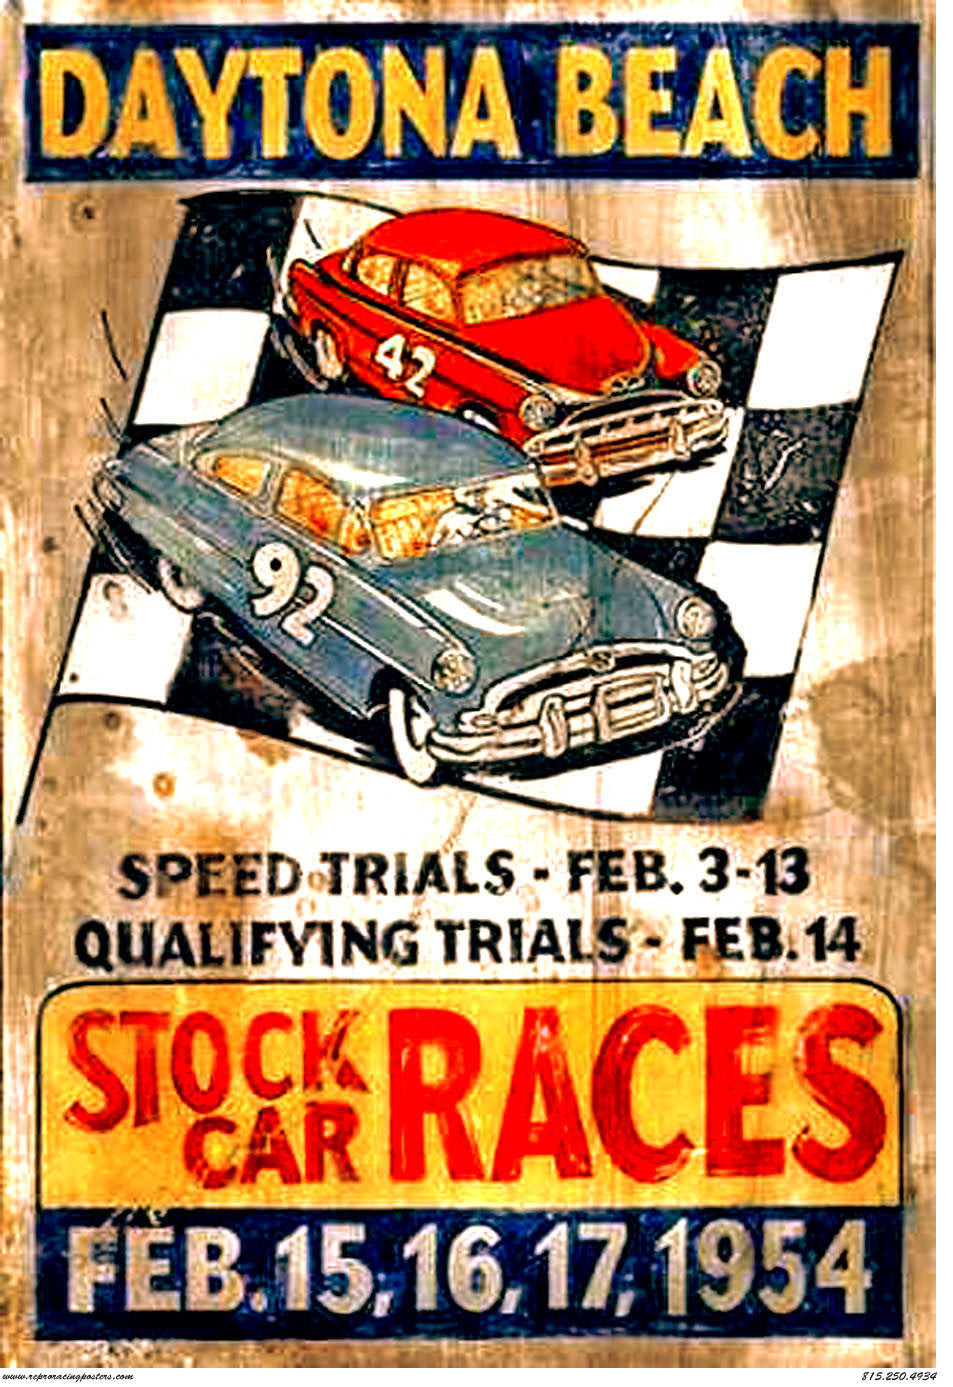 Daytona Beach Stock Car Races- 1954